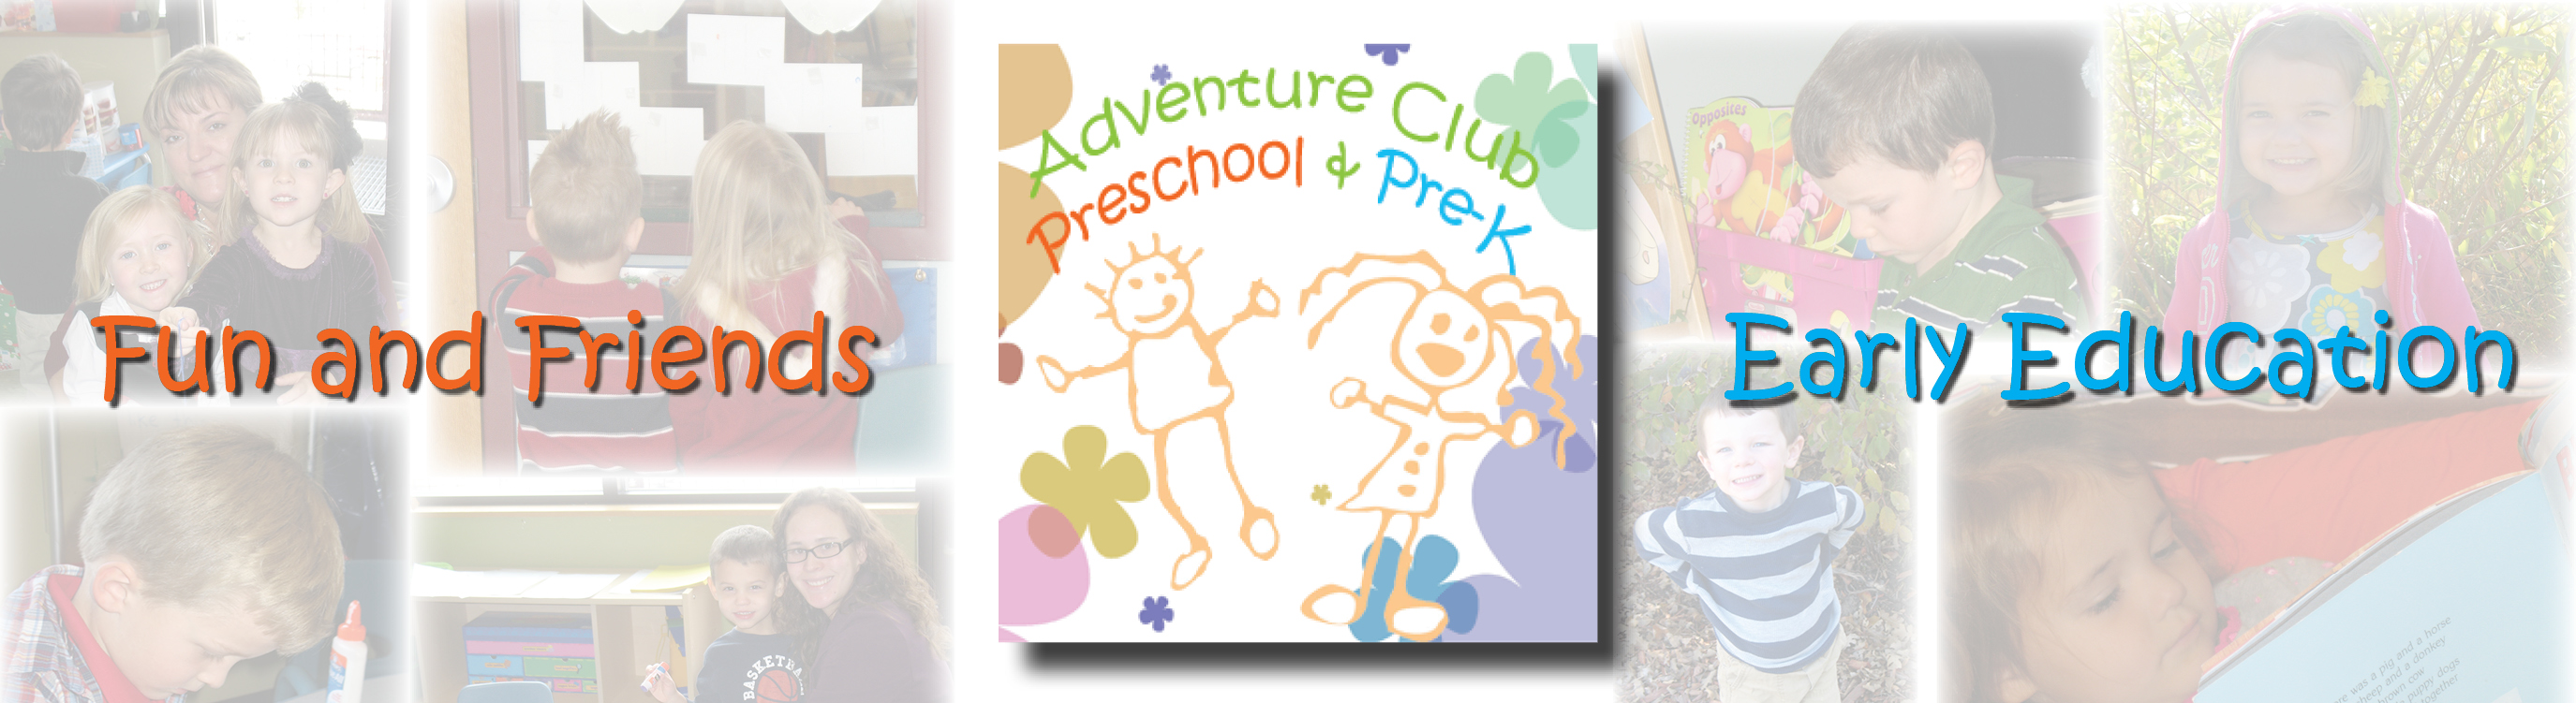 Fun and Friends and Early Education logo